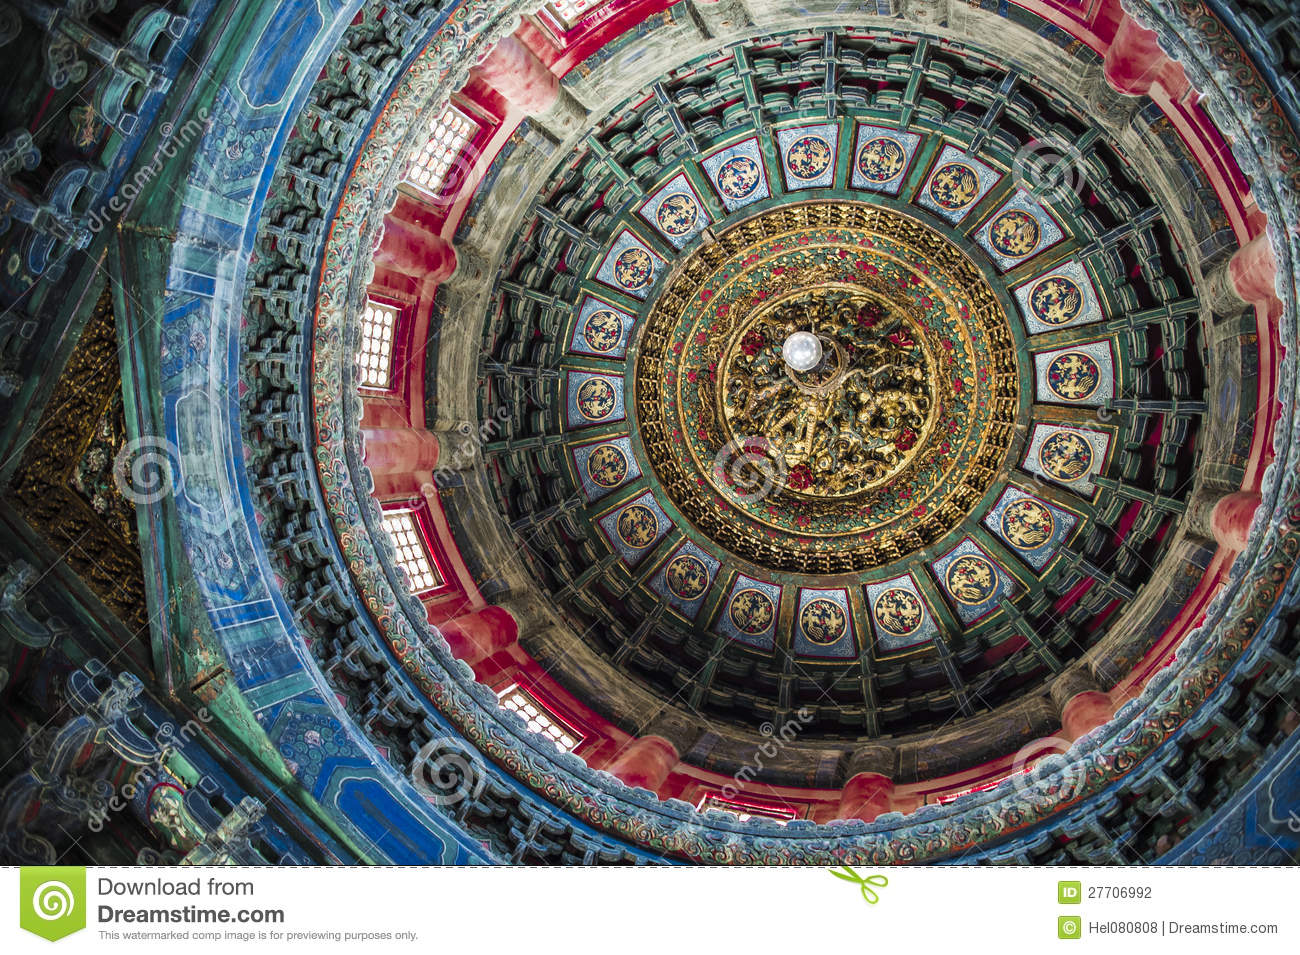 Ceiling of a temple in Beijing, China